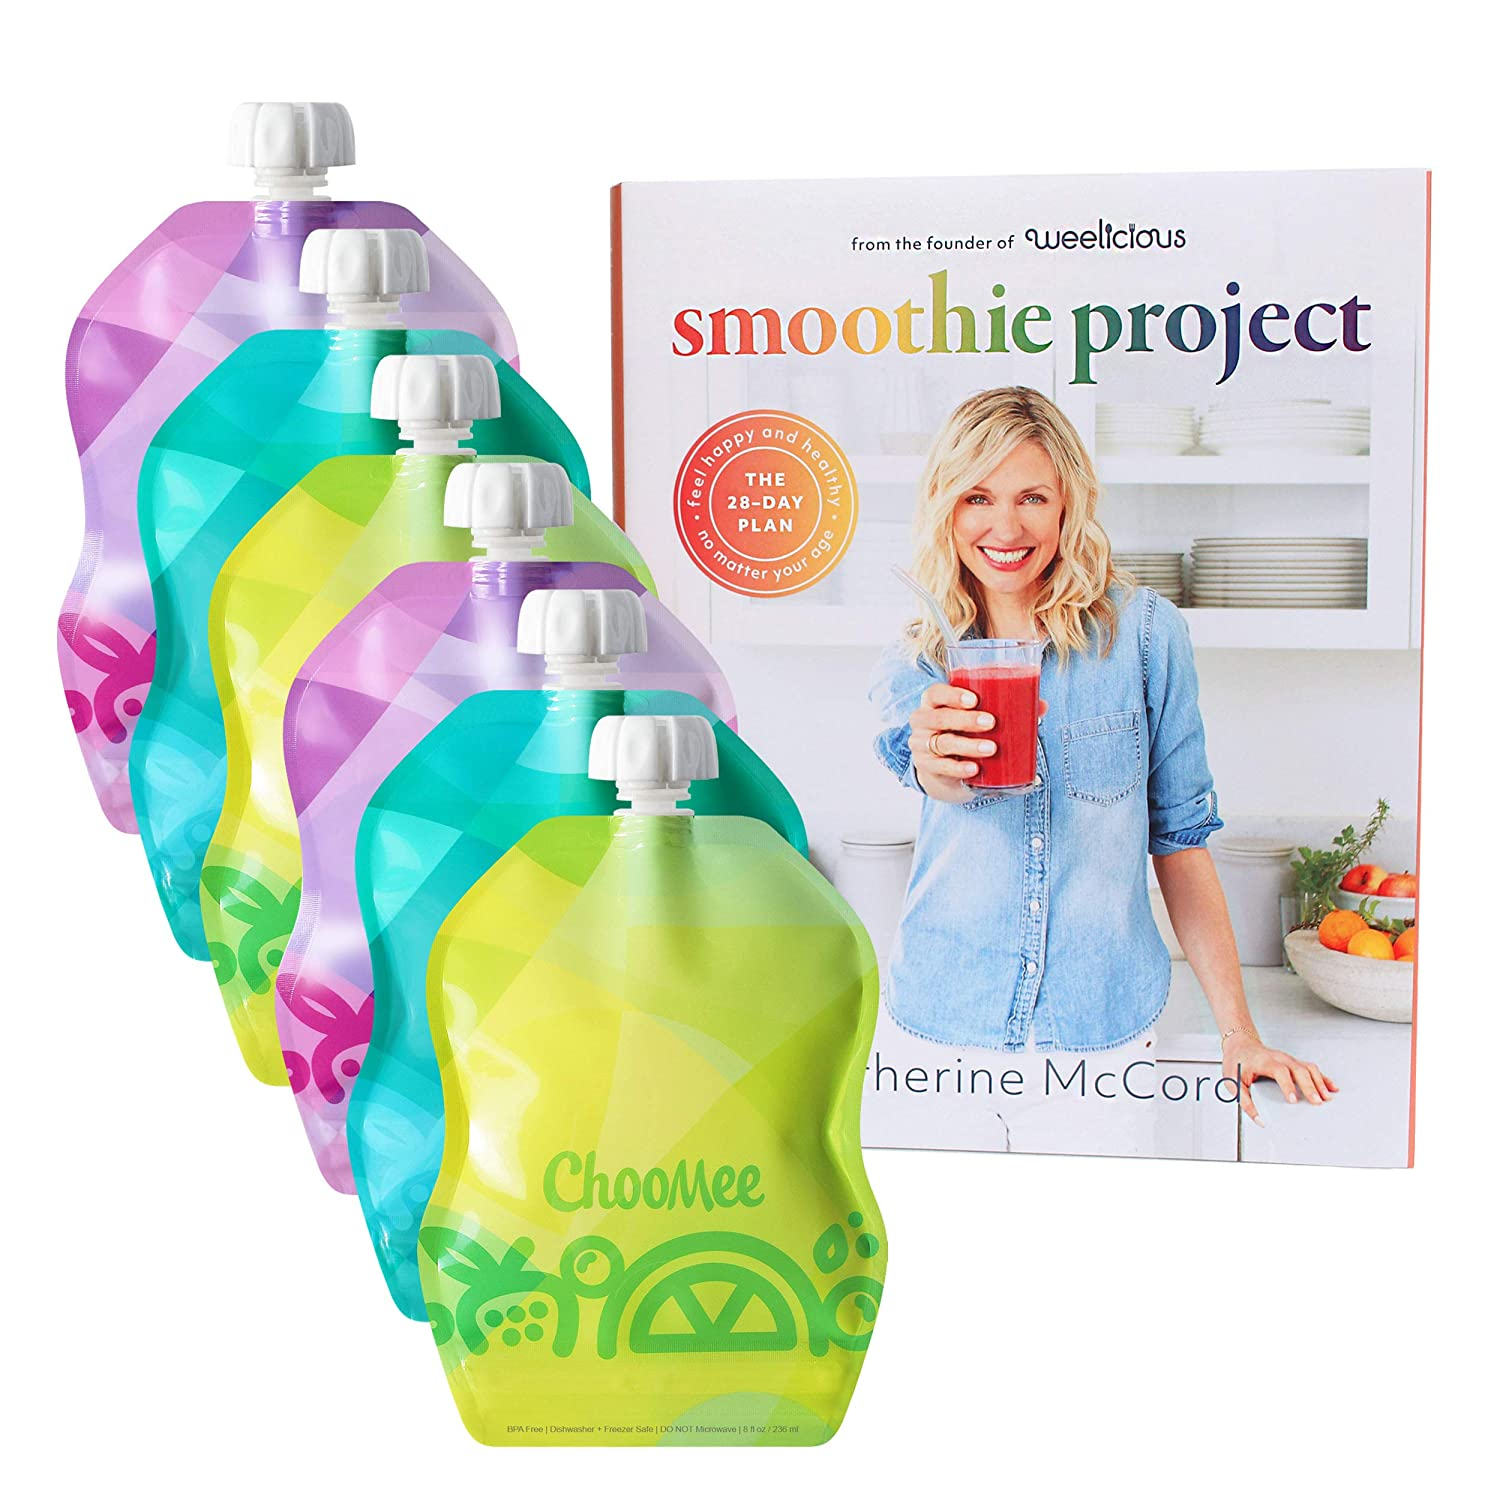 ChooMee Smoothie Project by Weelicious + SnakPack Reusable Food Pouches - New! | 6 CT, 8 oz | TropiColor Design, Ideal for Purees, Smoothie Blends and Baby Food